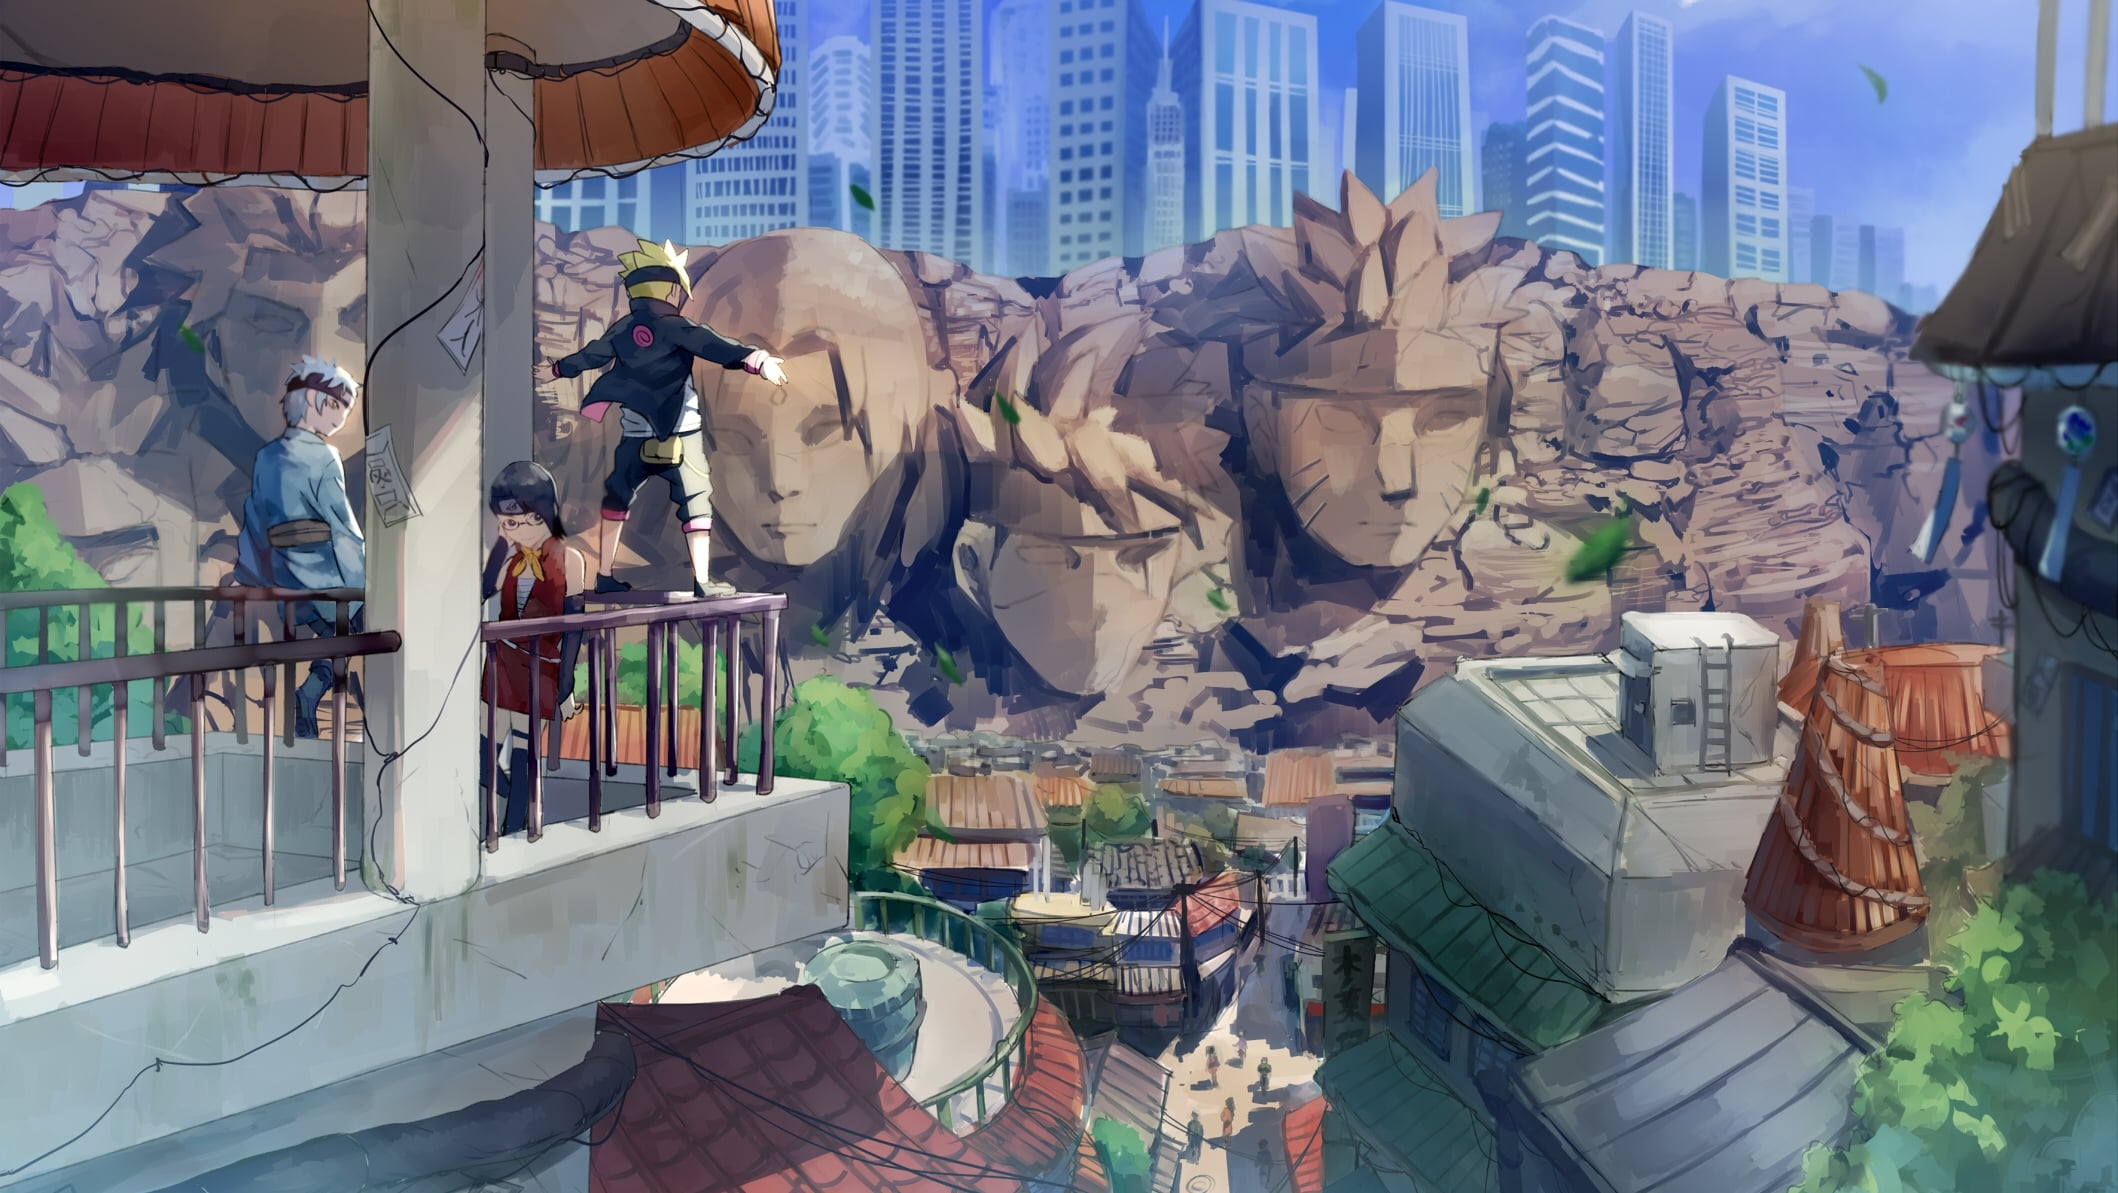 Boruto: Naruto Next Generations backdrop